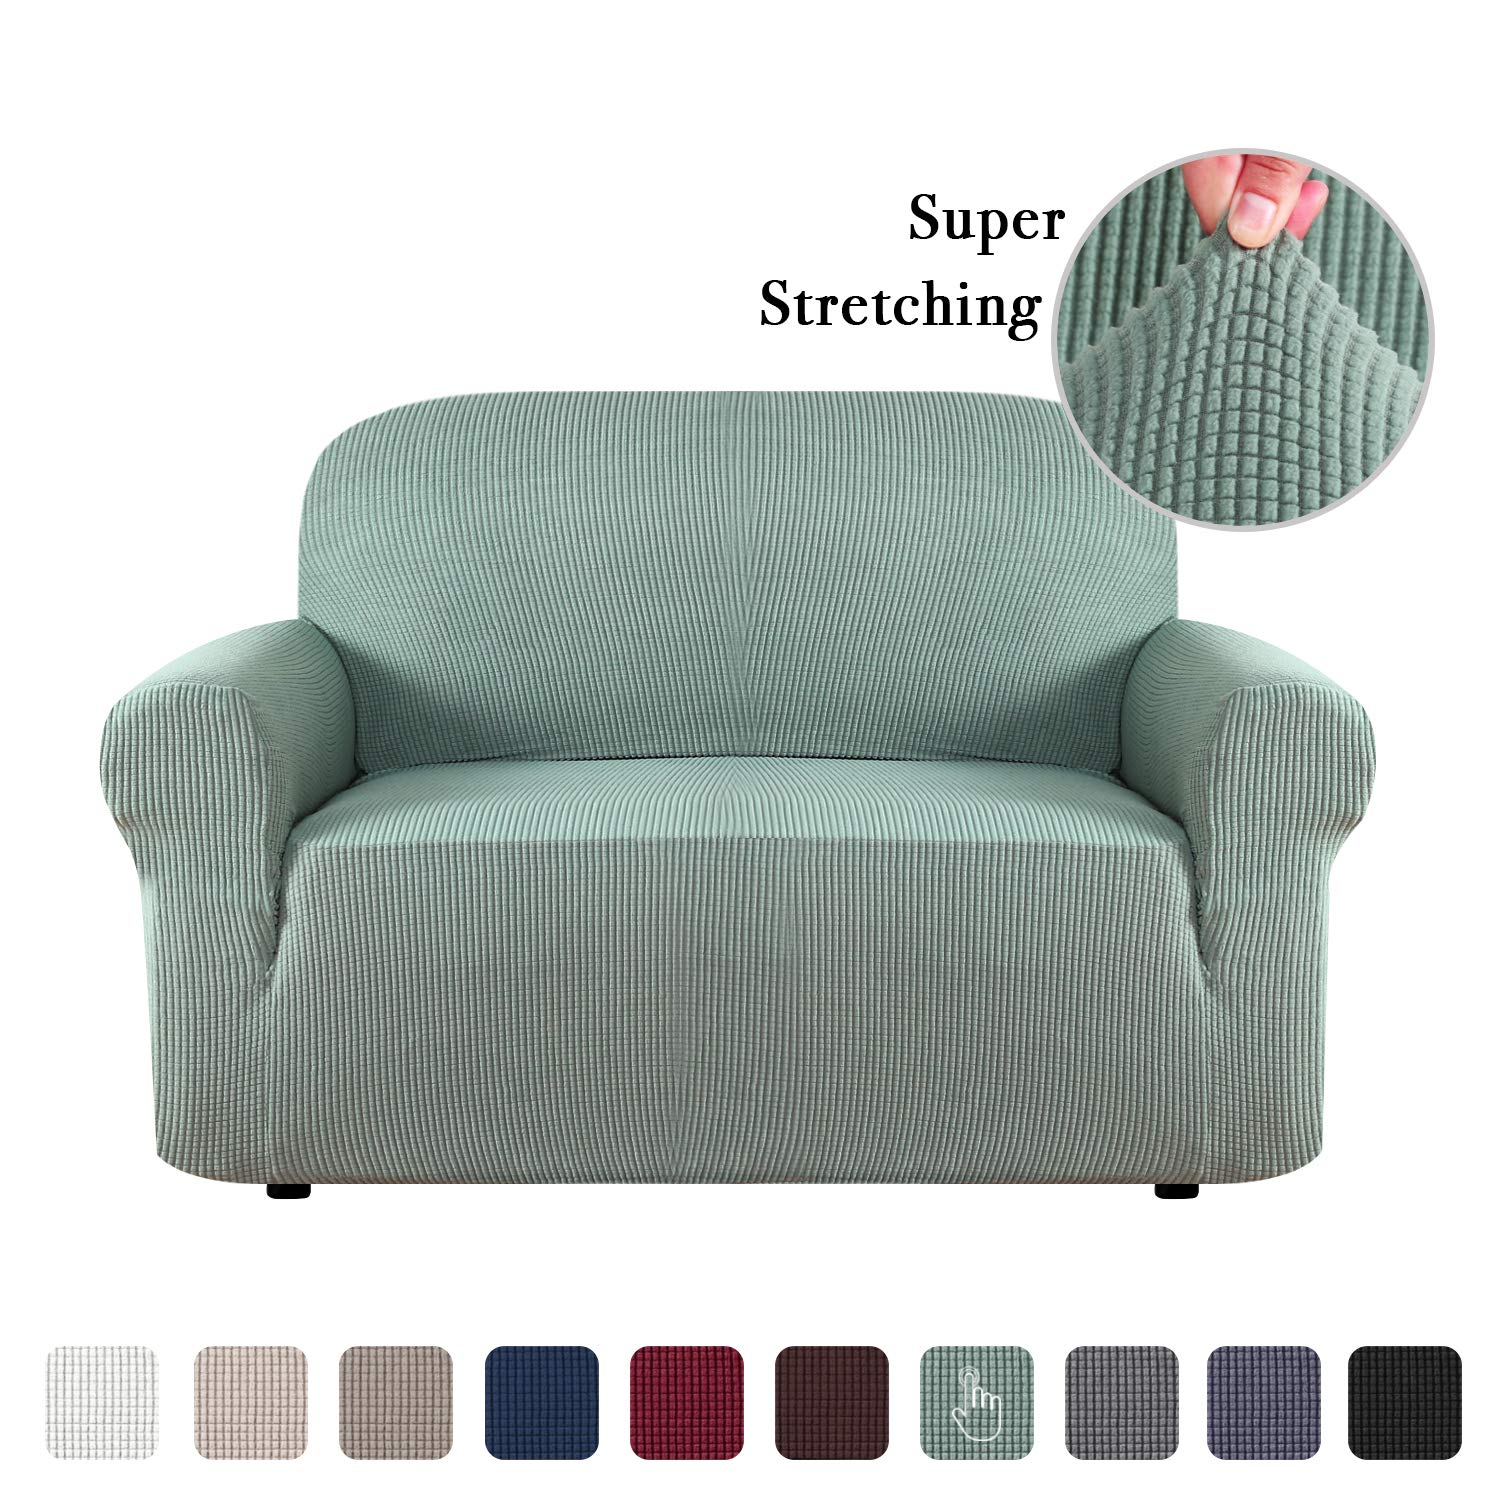 Fine Flamingo P One Piece Loveseat Slipcover Stylish Furniture Cover Protector Stay In Place With Spandex Stretch Durable Fabric Dark Cyan Loveseat Forskolin Free Trial Chair Design Images Forskolin Free Trialorg